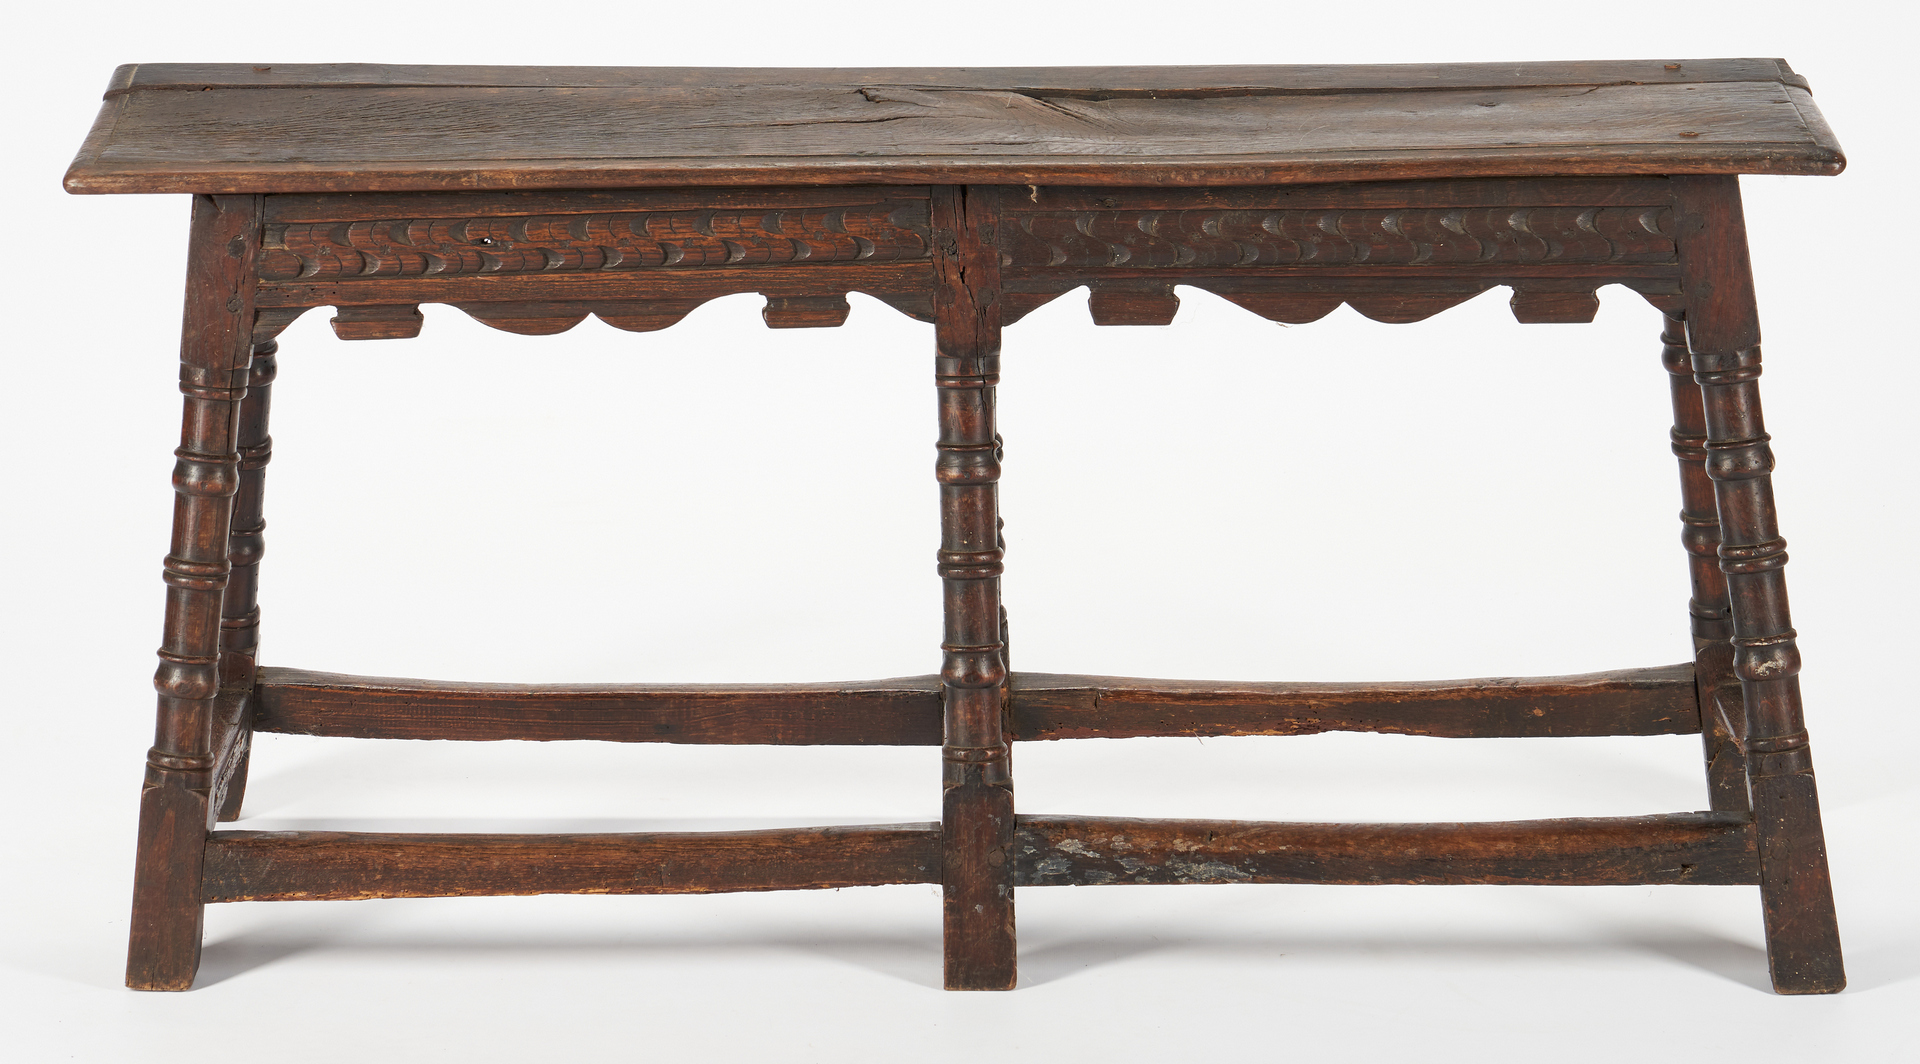 Lot 237: William & Mary English stretcher bench and table